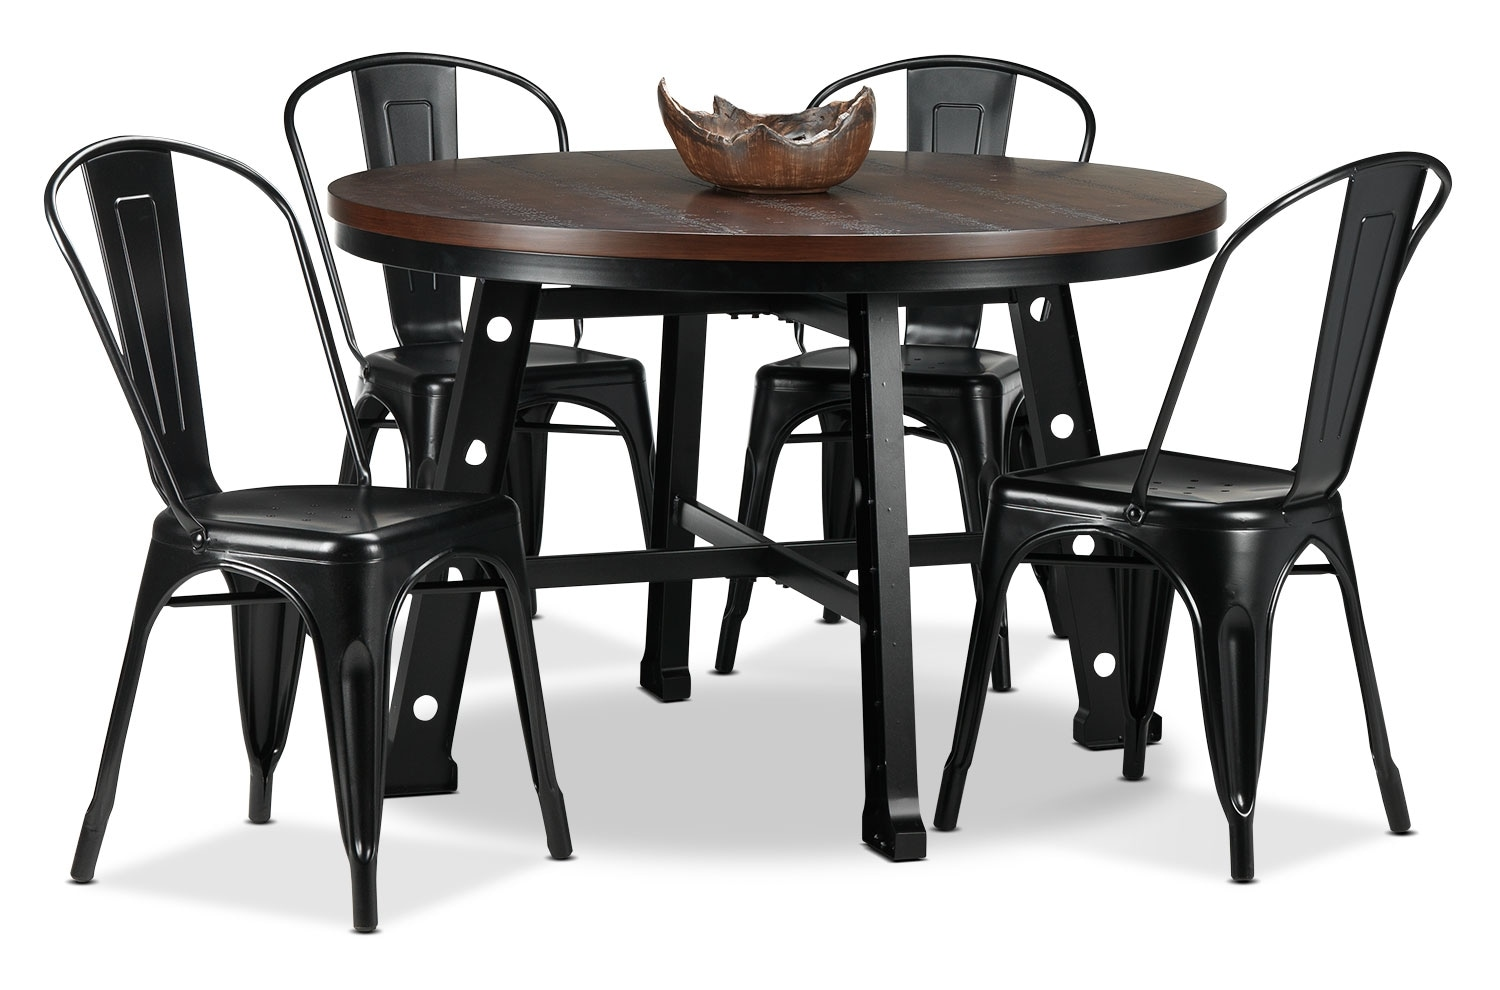 Casual Dining Room Furniture - Stockton 5-Piece Dinette Set - Black and Walnut